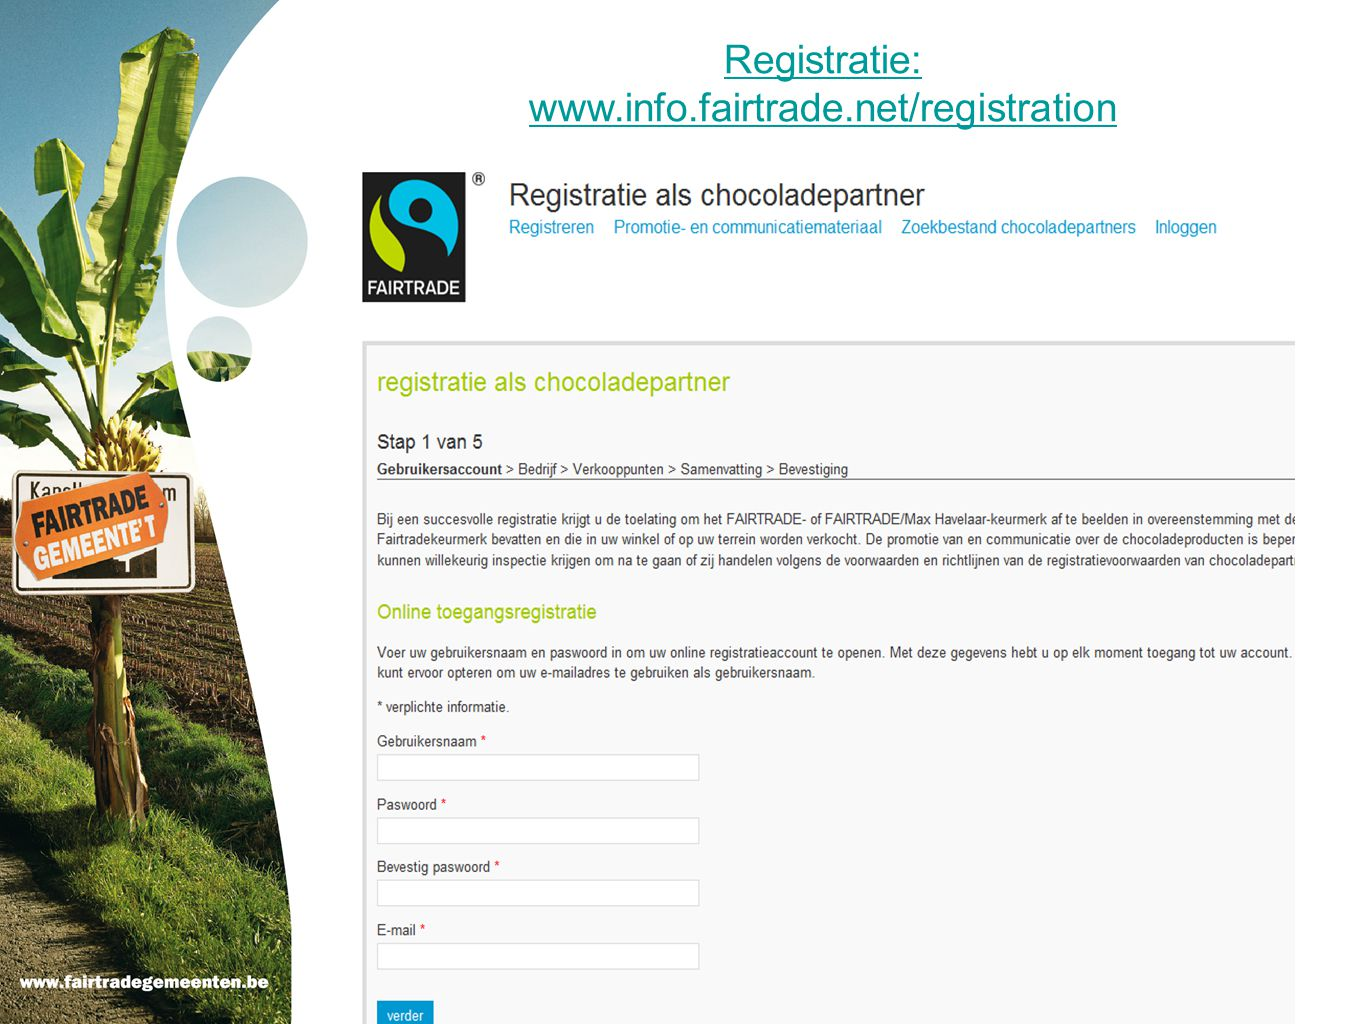 Registratie: www.info.fairtrade.net/registration